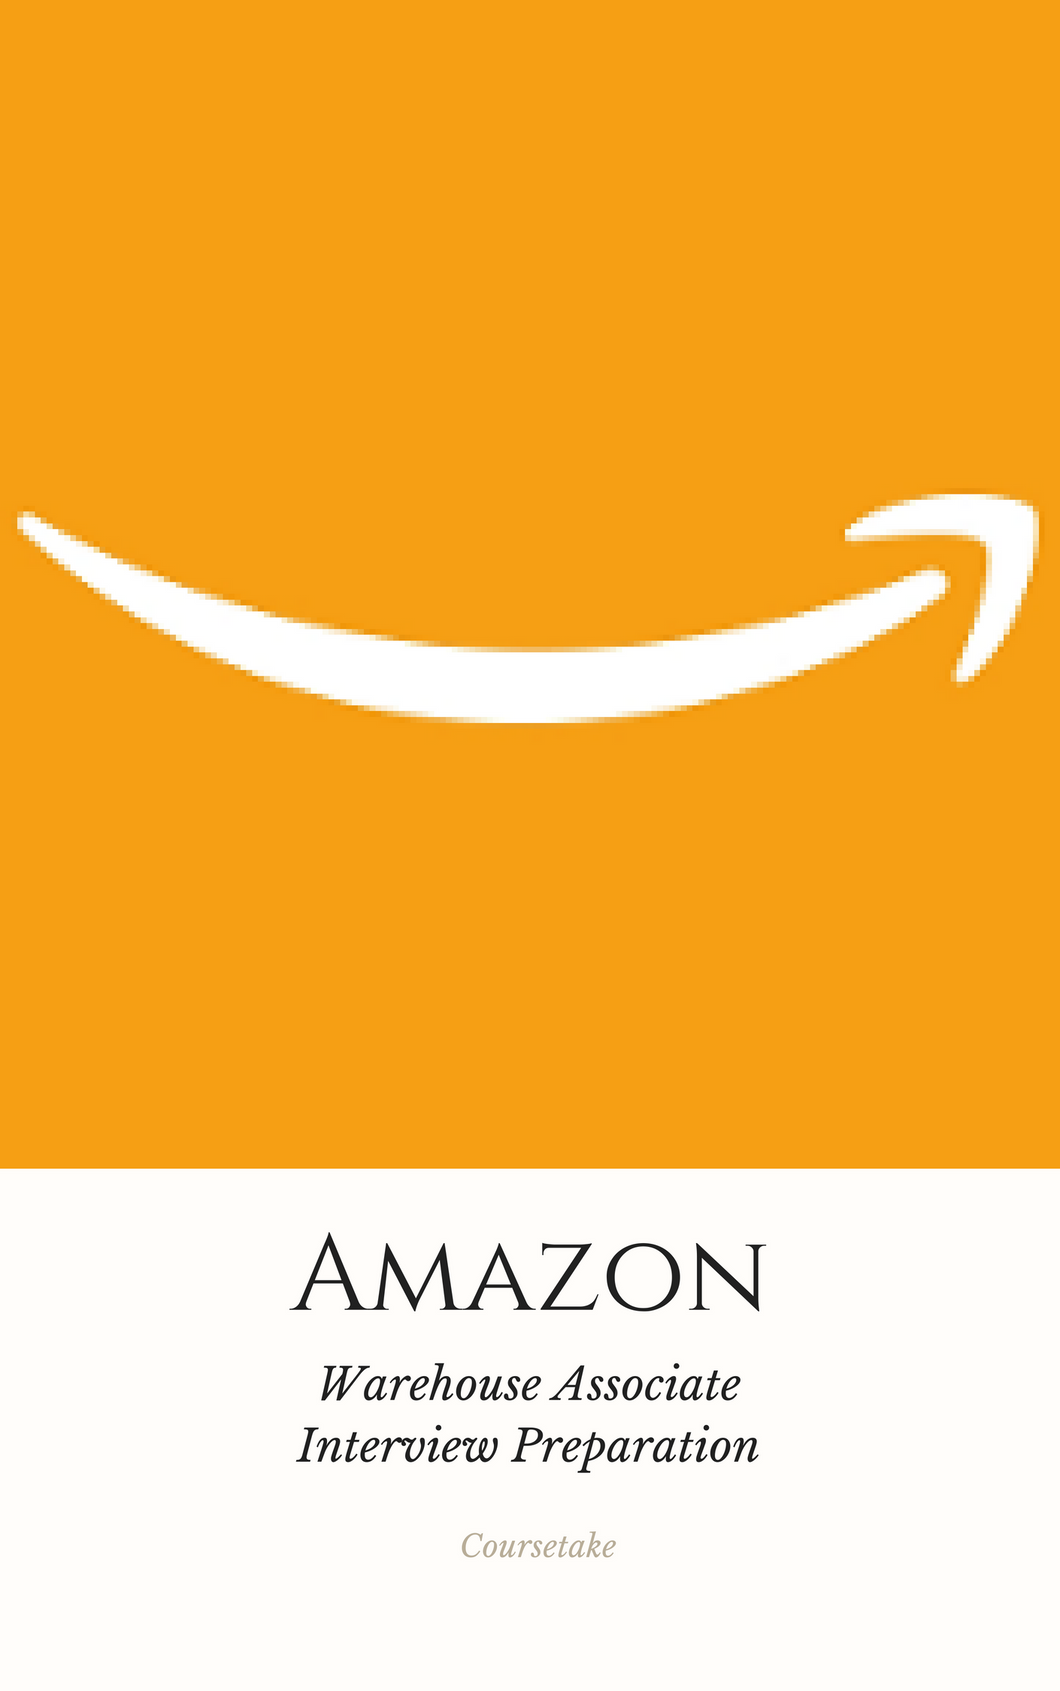 Amazon Warehouse Associate Interview Preparation Study Guide